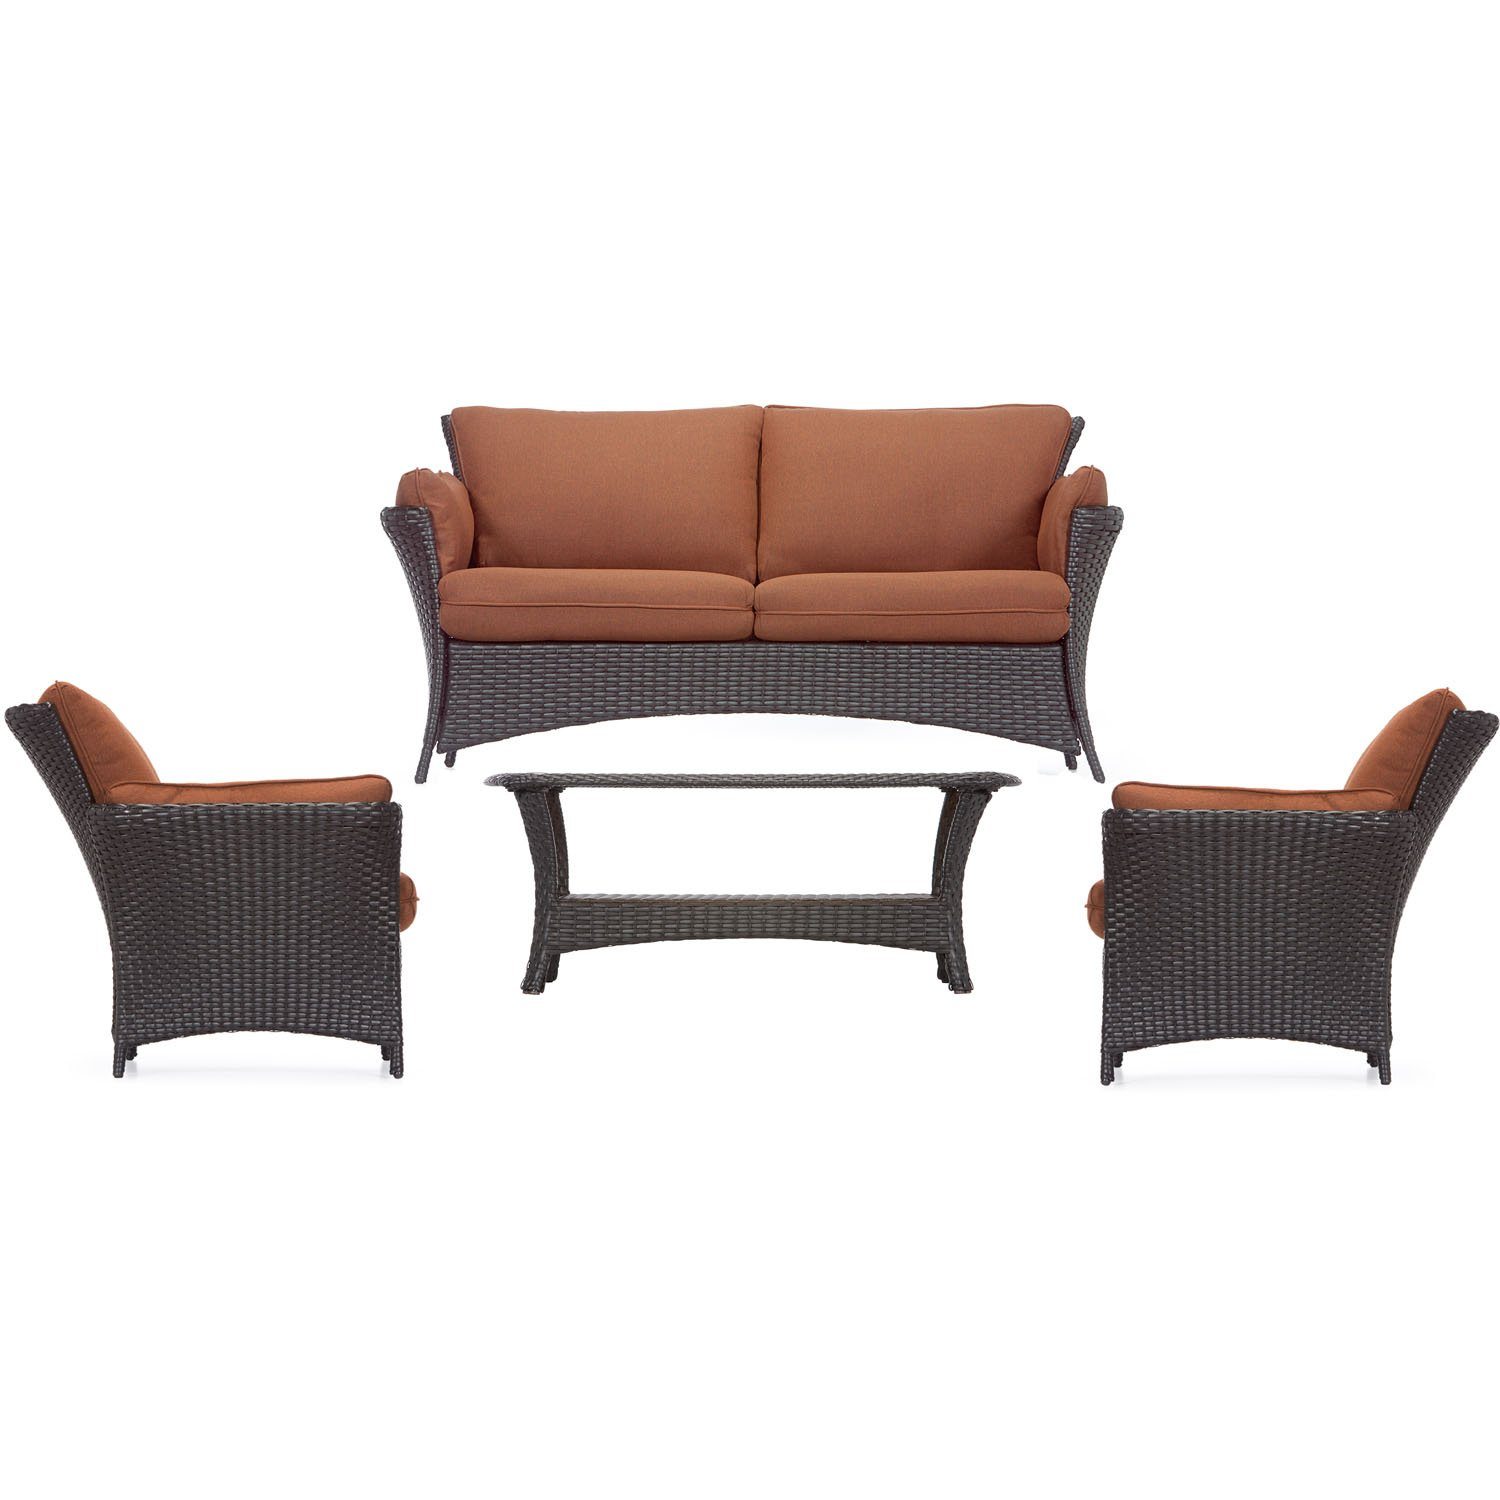 Amazon.com : Hanover Strathmere Allure 4 Piece Lounging Set : Garden U0026  Outdoor